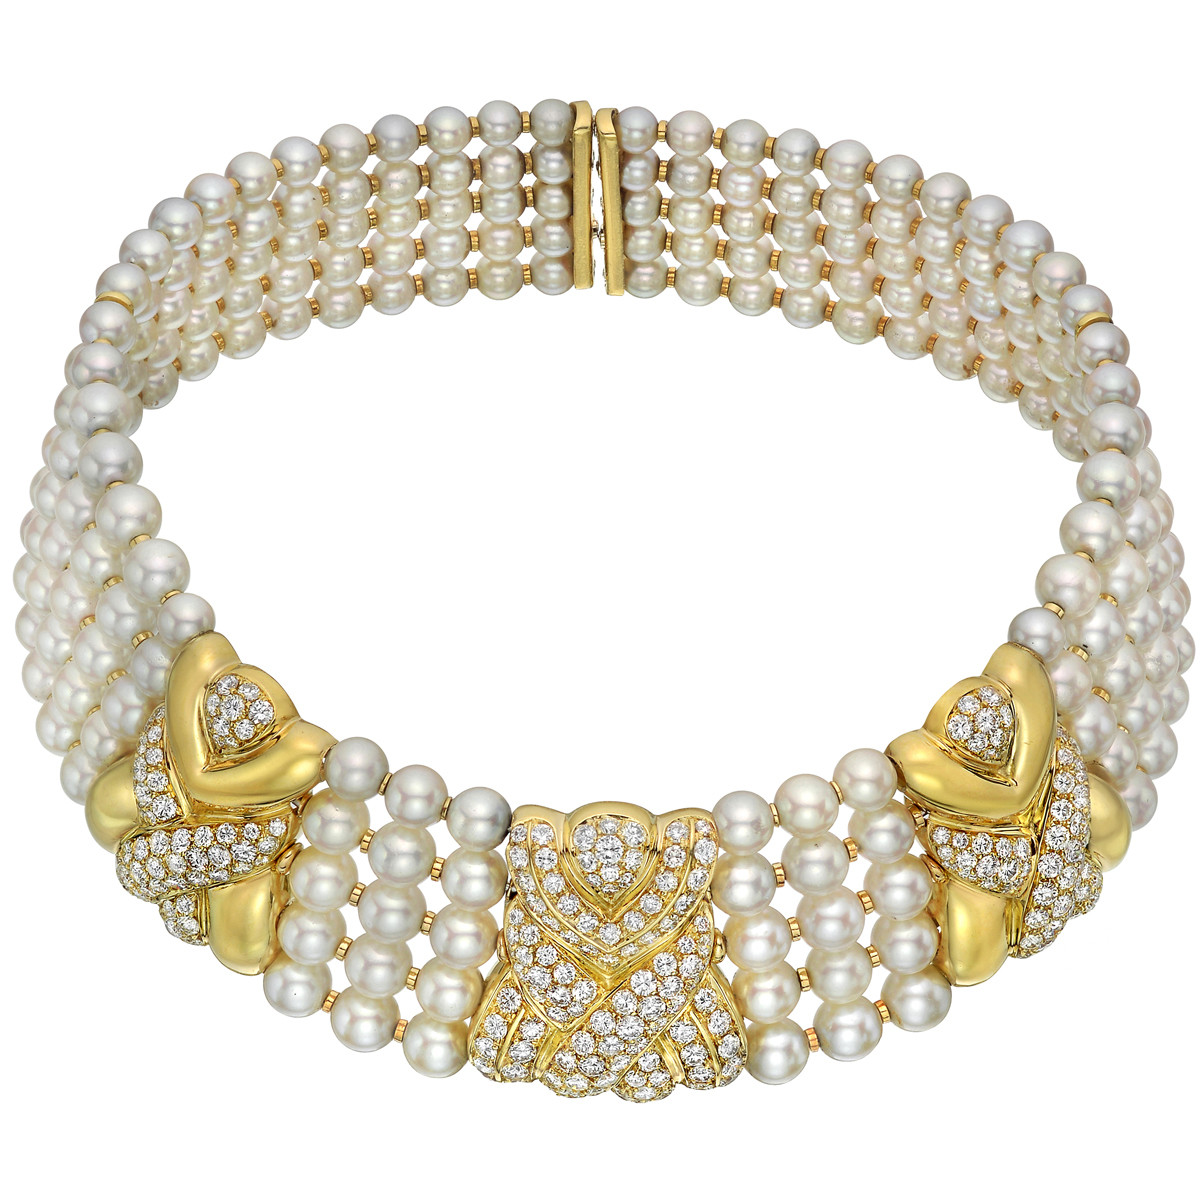 18k Gold, Pearl & Diamond Choker Necklace